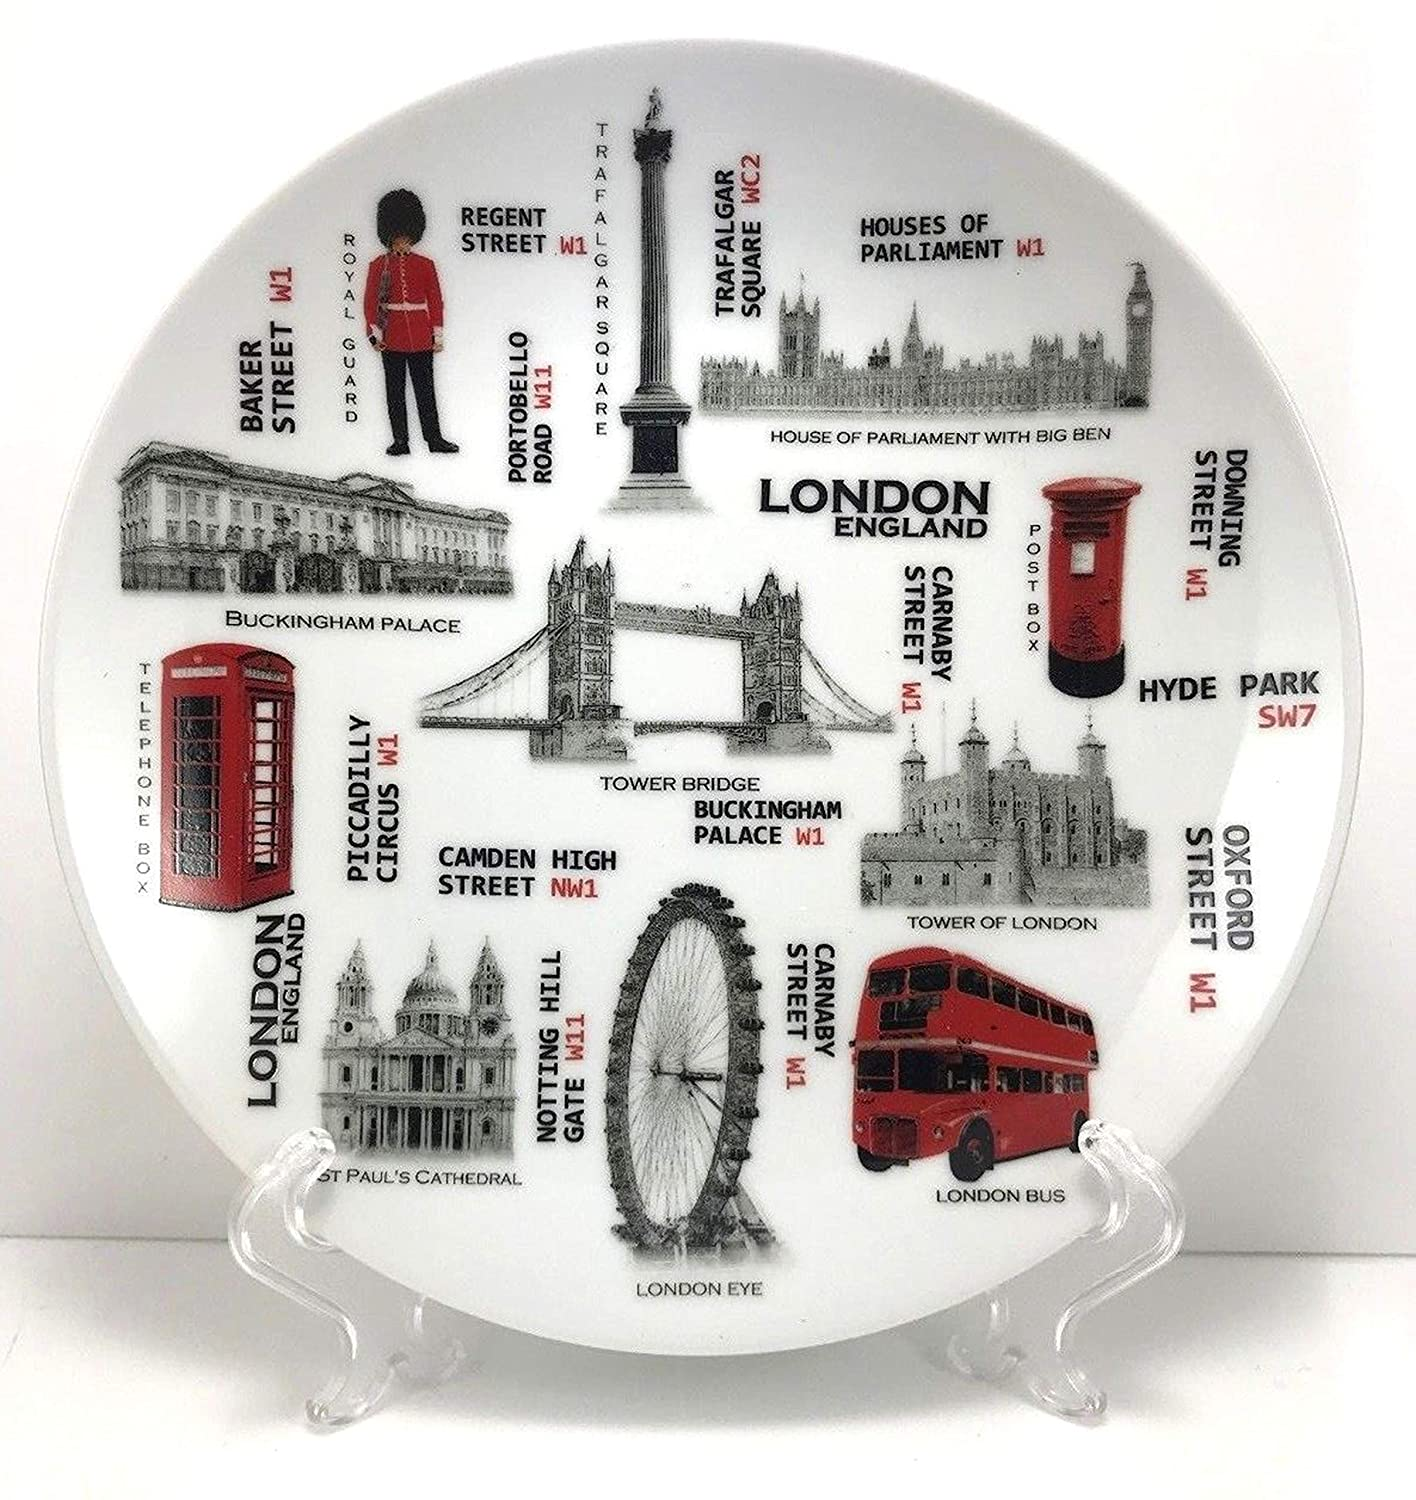 euroind LONDON SOUVENIRS DECORATIVE PORCELAIN PLATE + STAND 20 CM CERAMIC GIFT